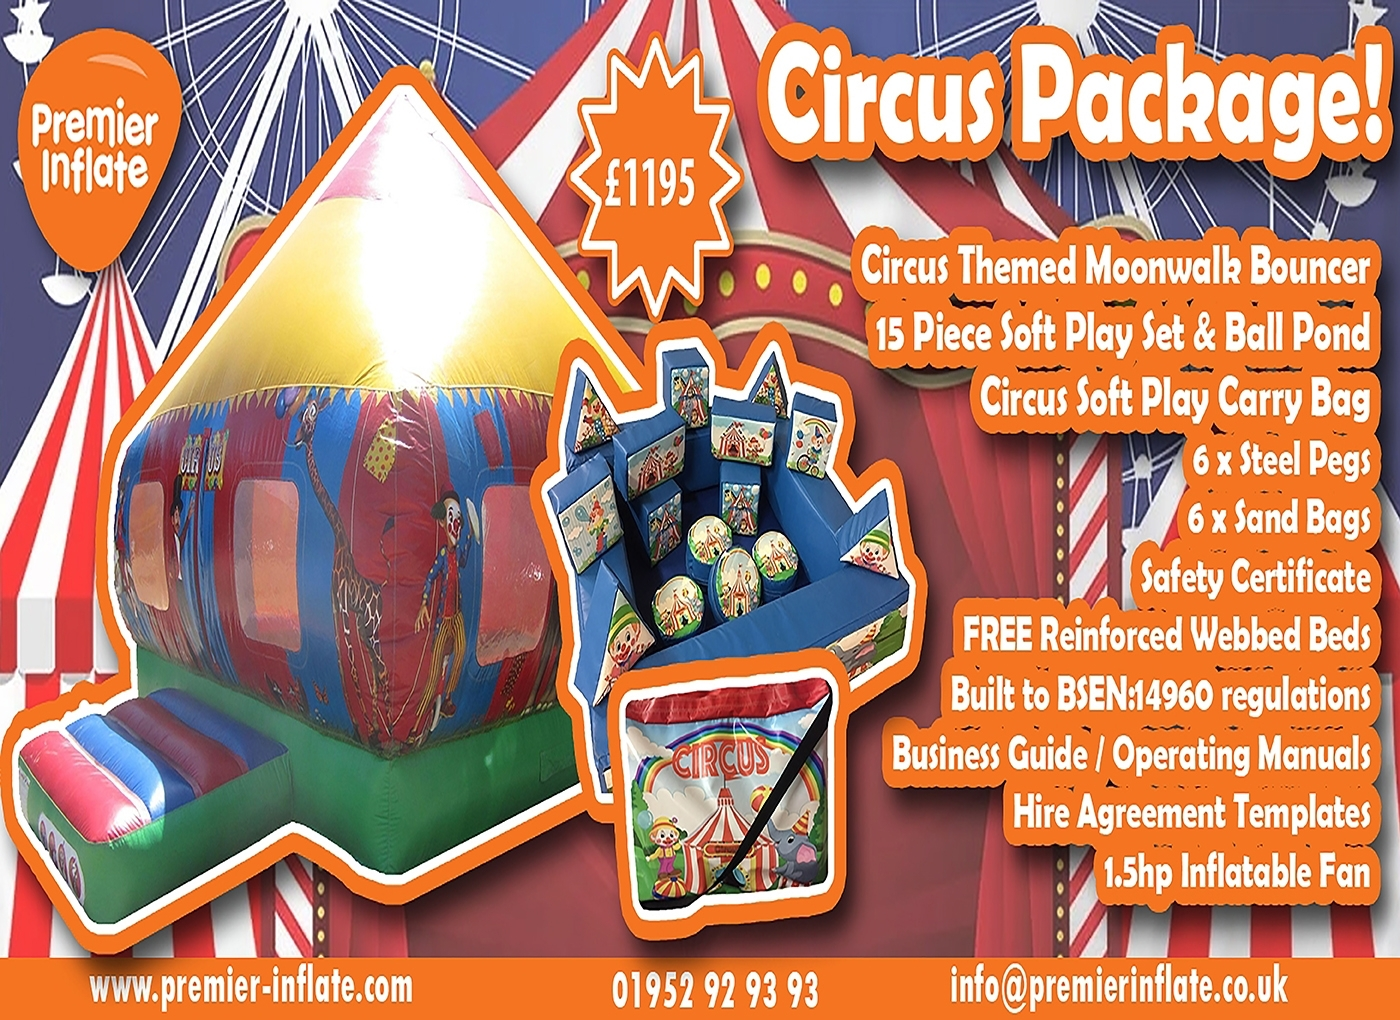 Circus Package